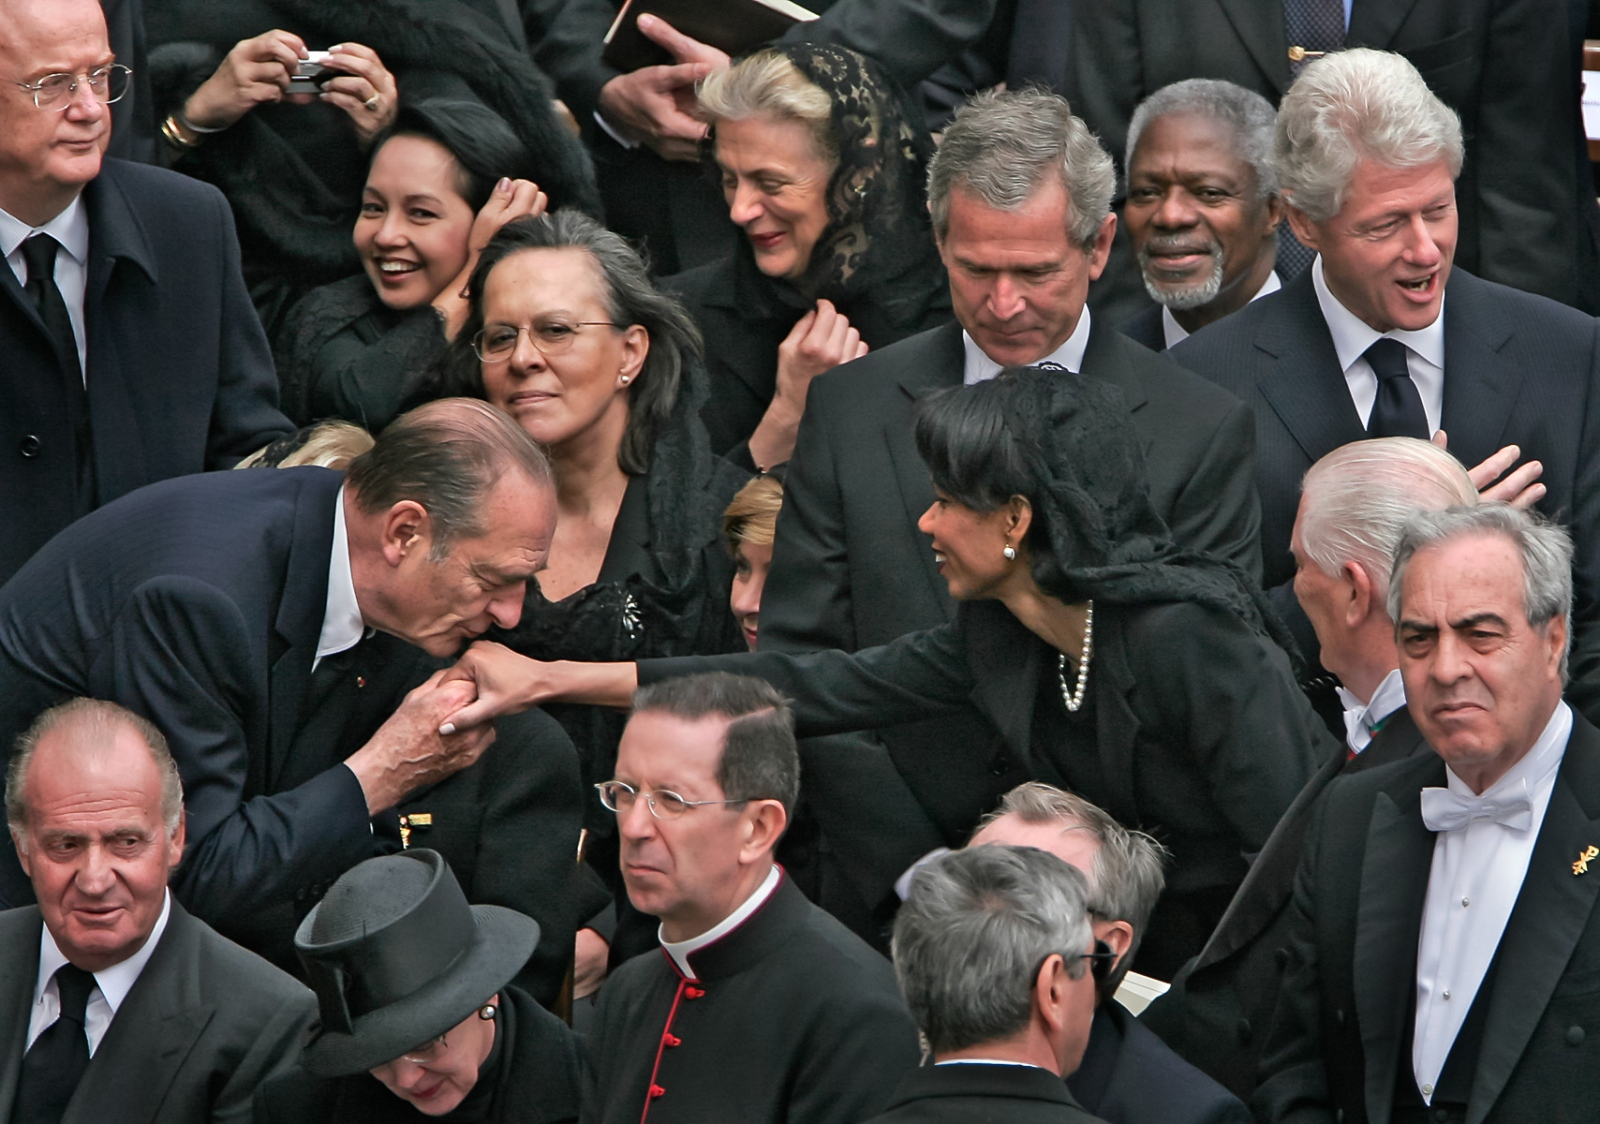 At the funeral of Pope John Paul II at the Vatican Sec. of State Condelezza Rice gladly accepts a kiss by French President Jacques Chirac.